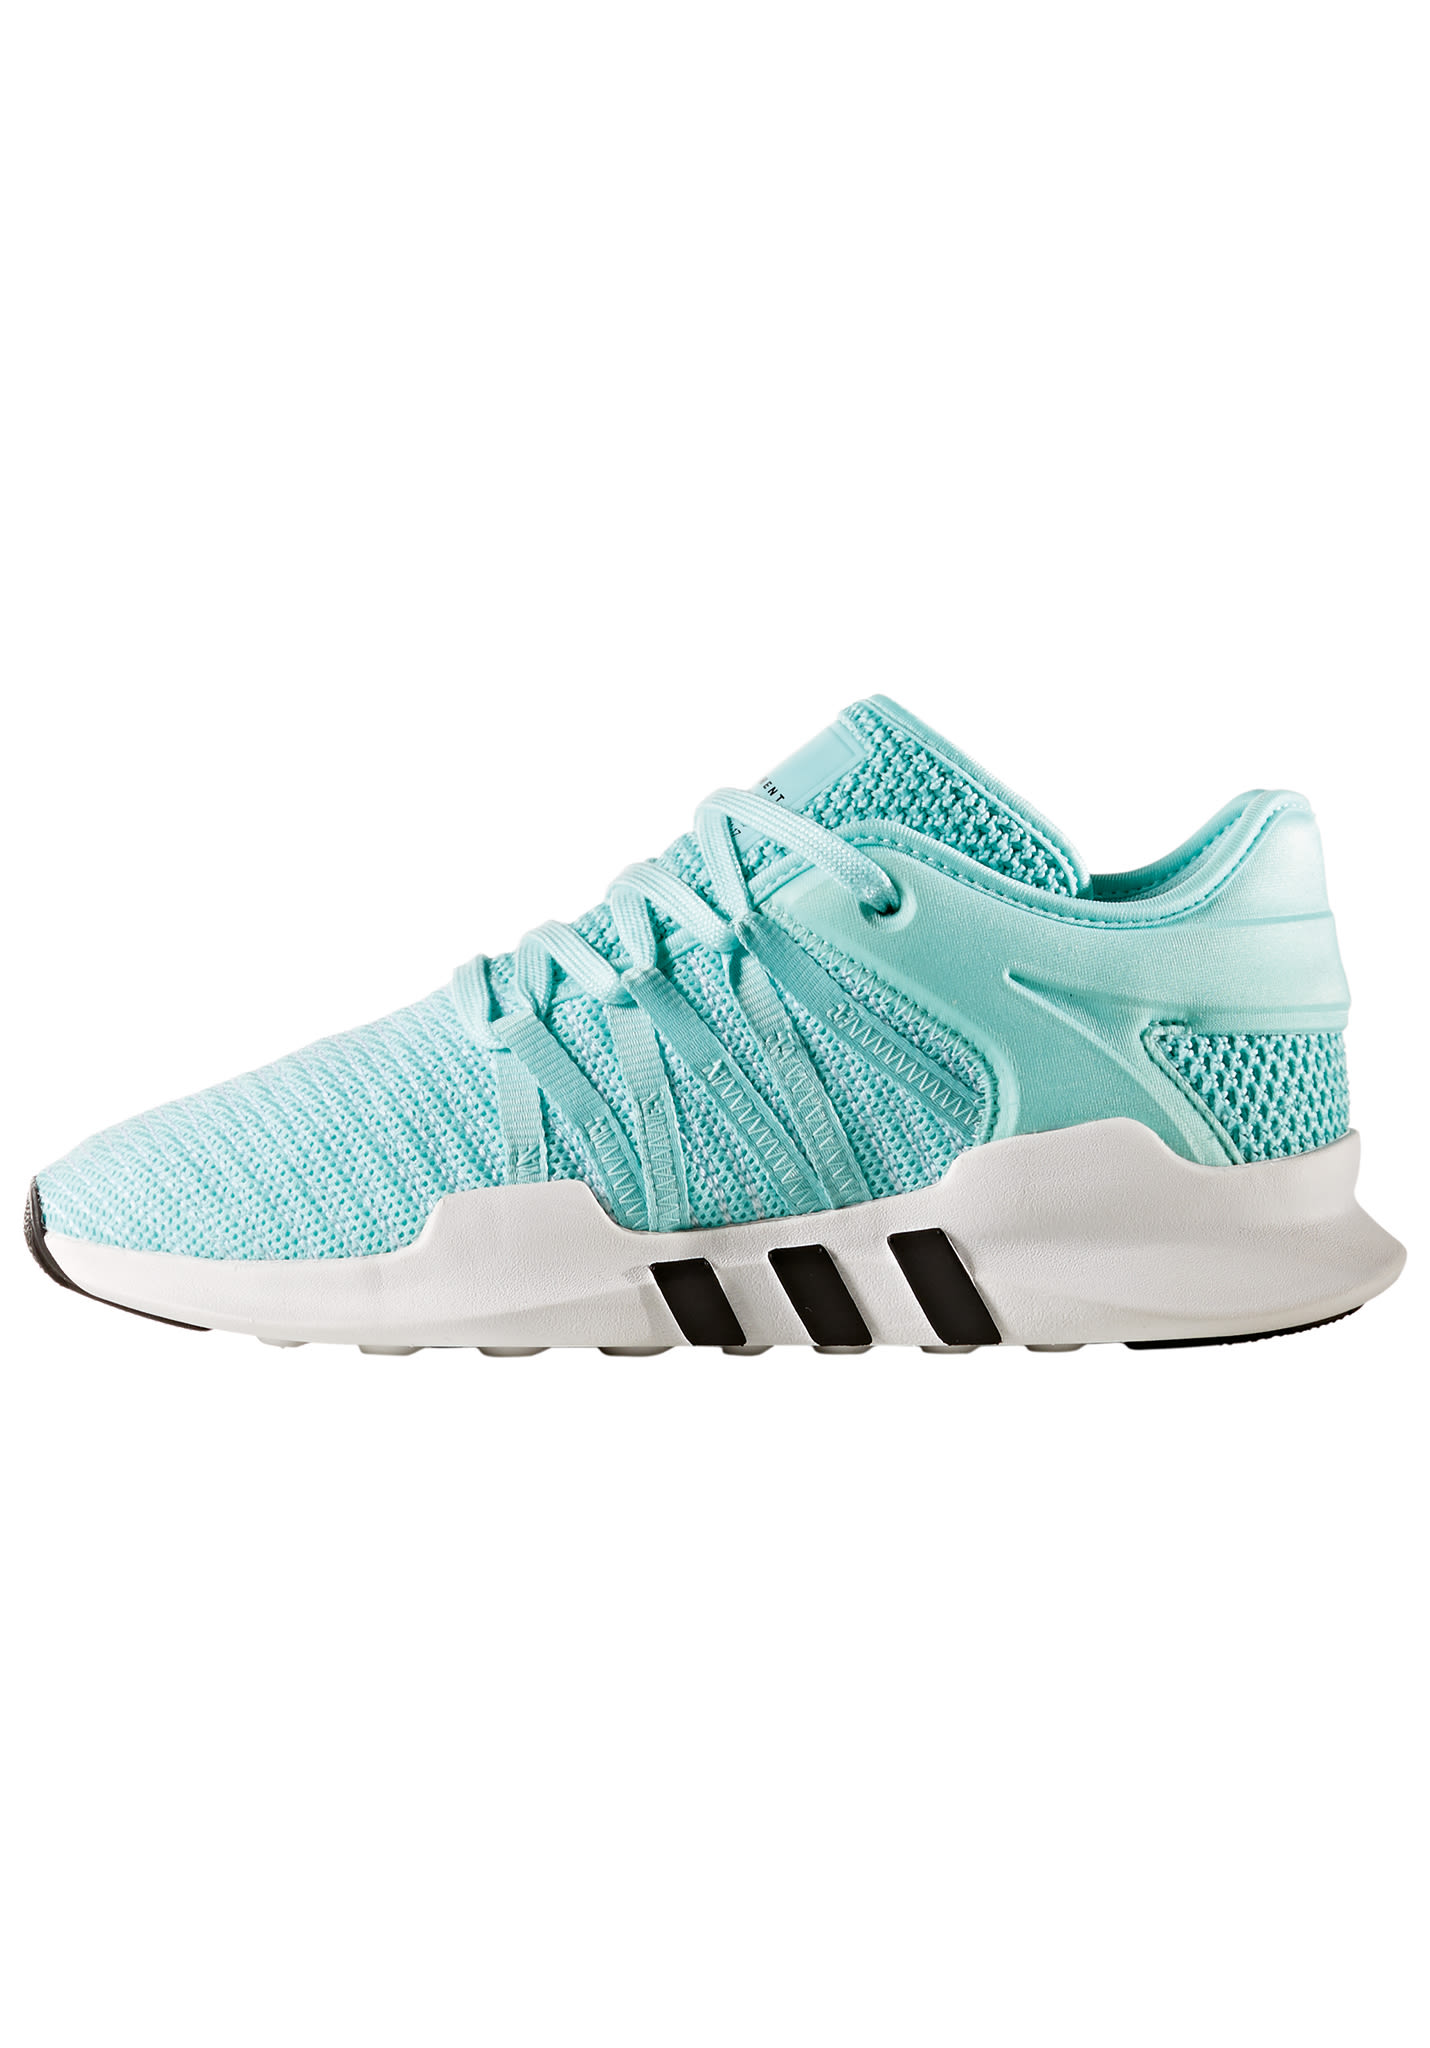 outlet store adaab 3c8b8 adidas Originals Eqt Racing Adv - Sneaker für Damen - Grün - Planet Sports